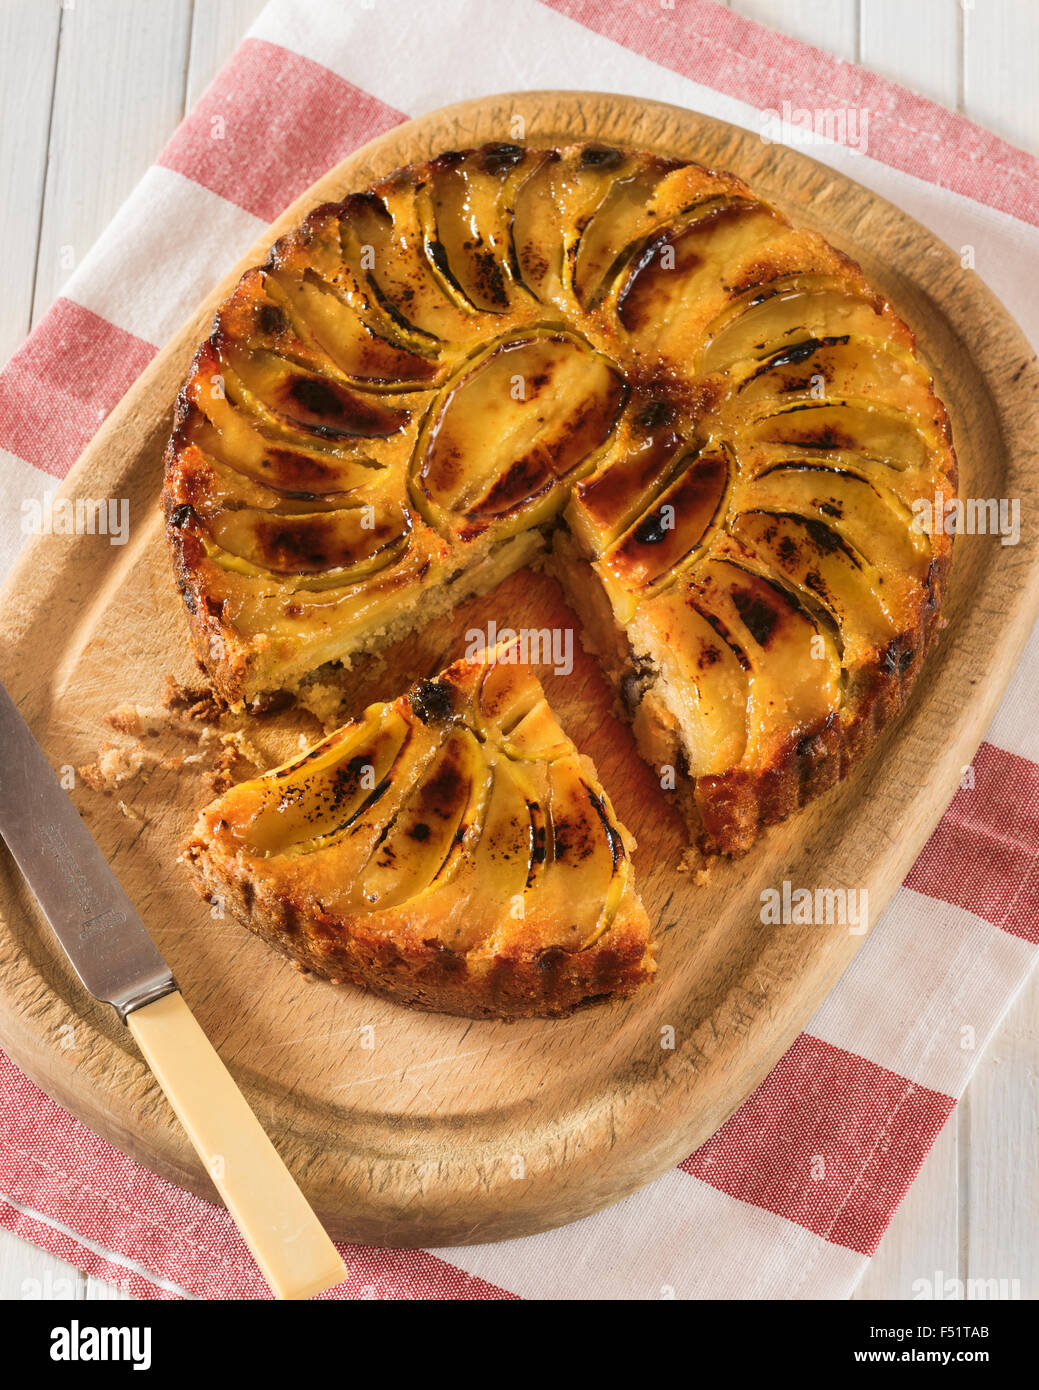 Dorset Apple Cake West Country Traditional Food Uk Stock Photo